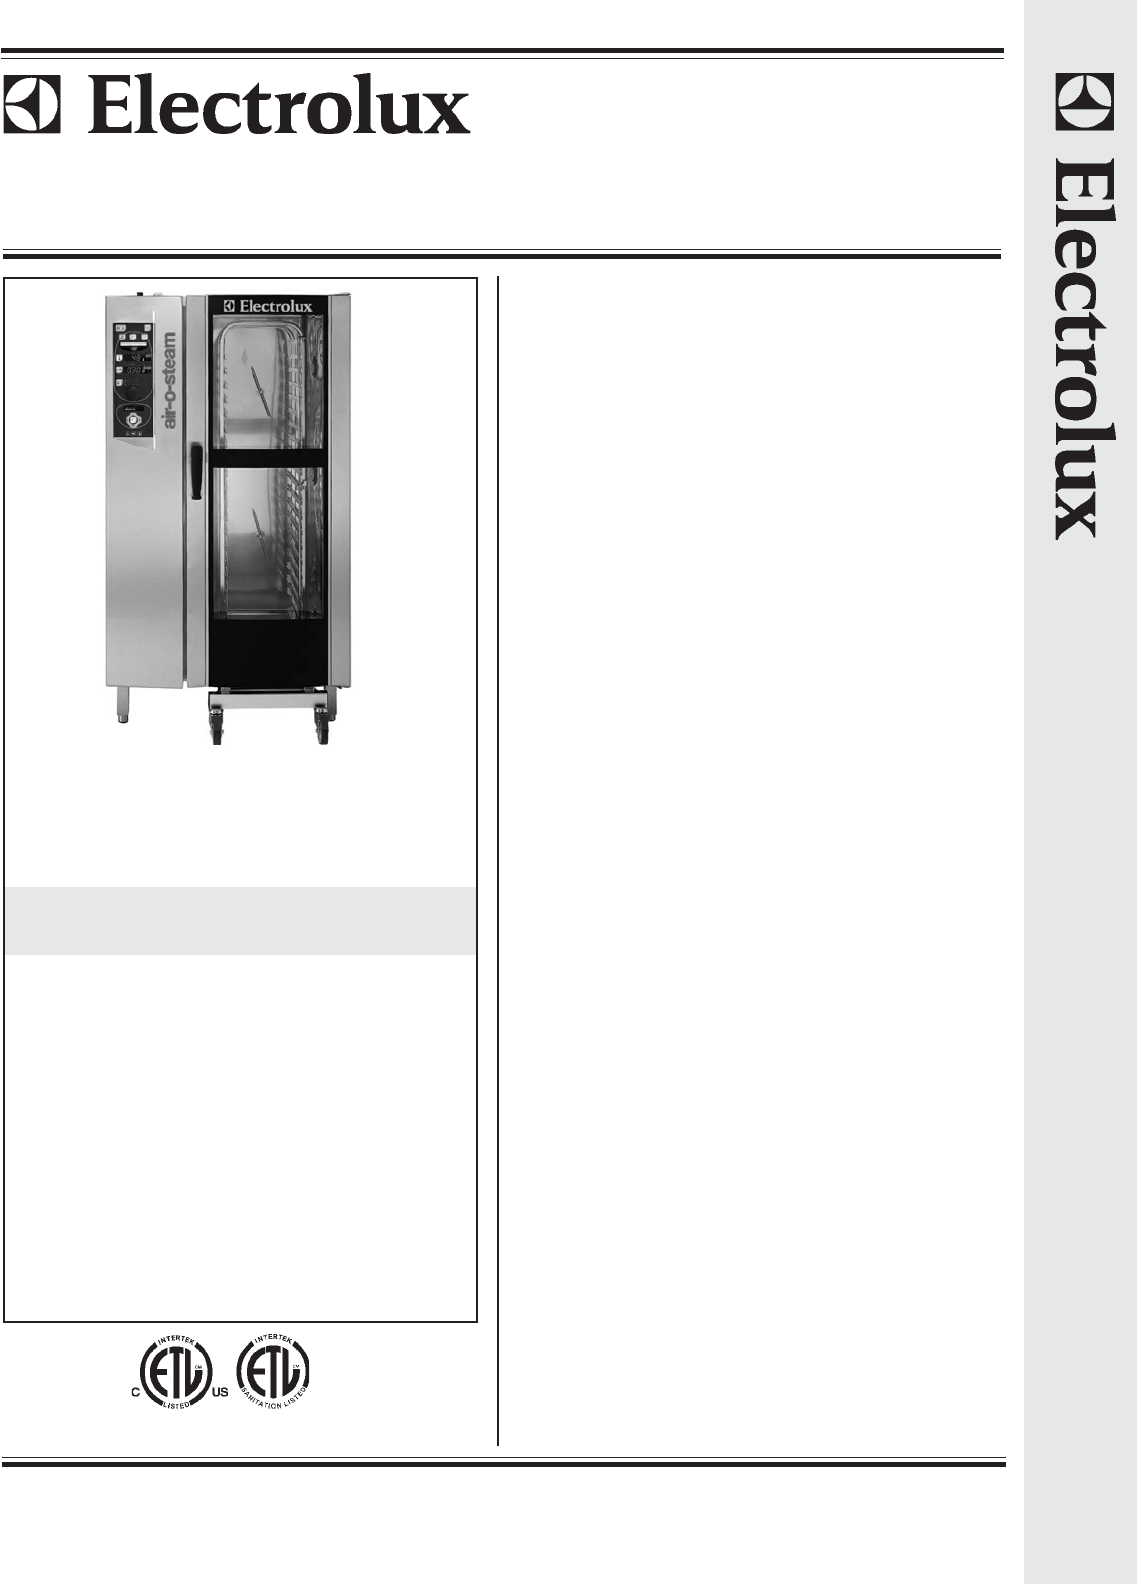 electric oven electrolux electric oven manual rh electricovenpinraga blogspot com electrolux combi steam oven manual electrolux combi oven parts